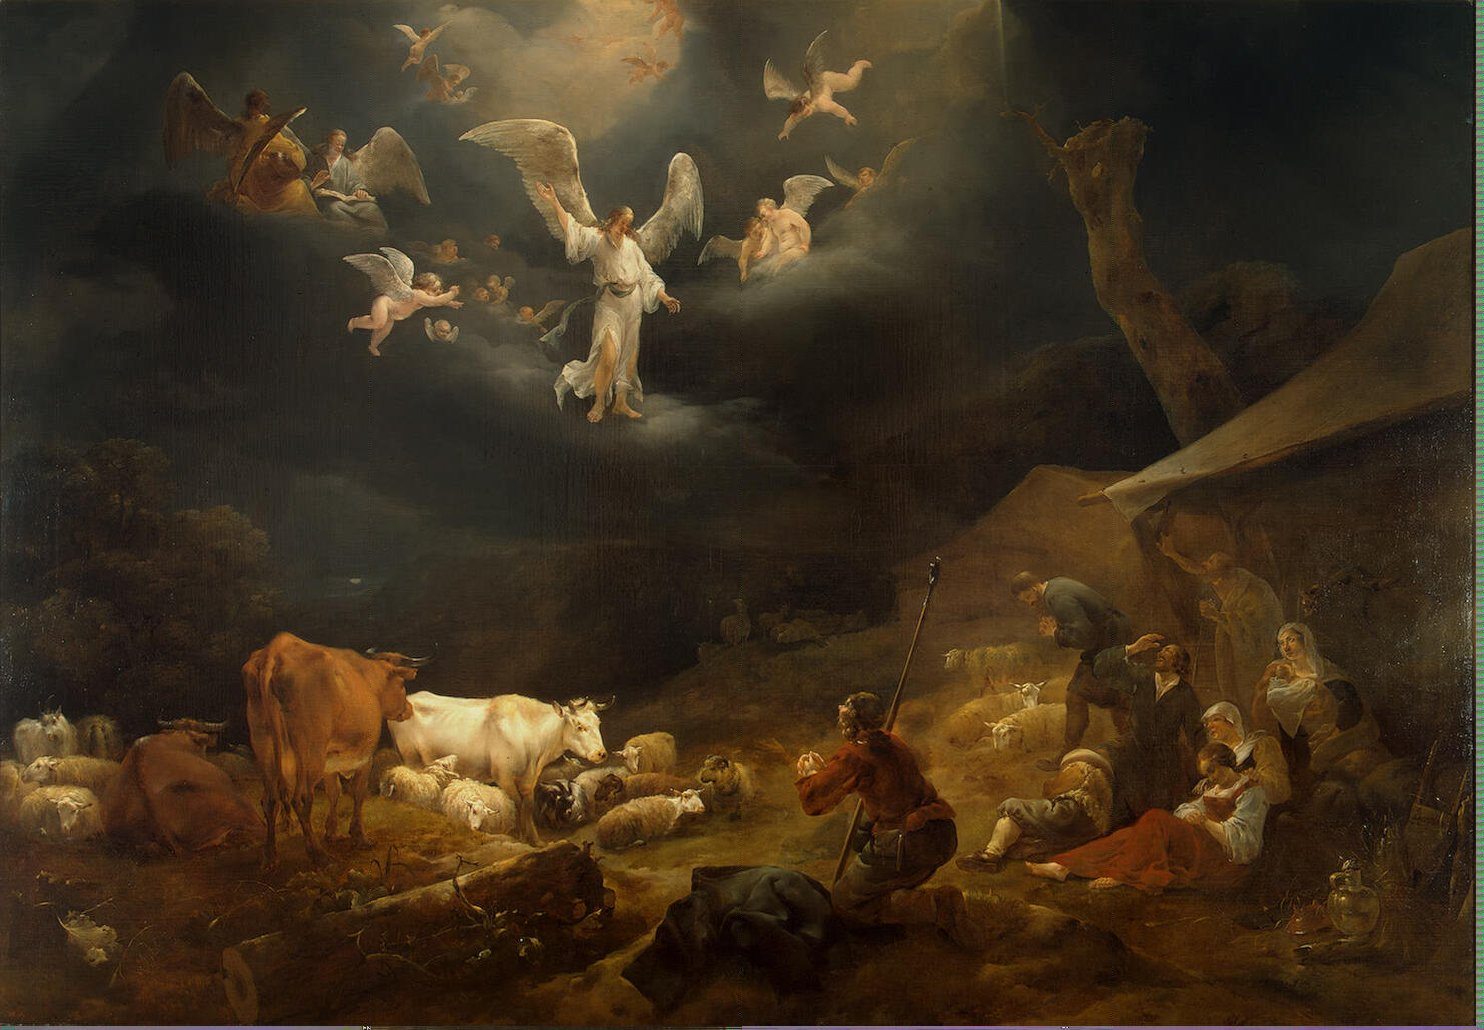 Annunciation to the Shepherds by  Berchem Nicolaes Pietersz